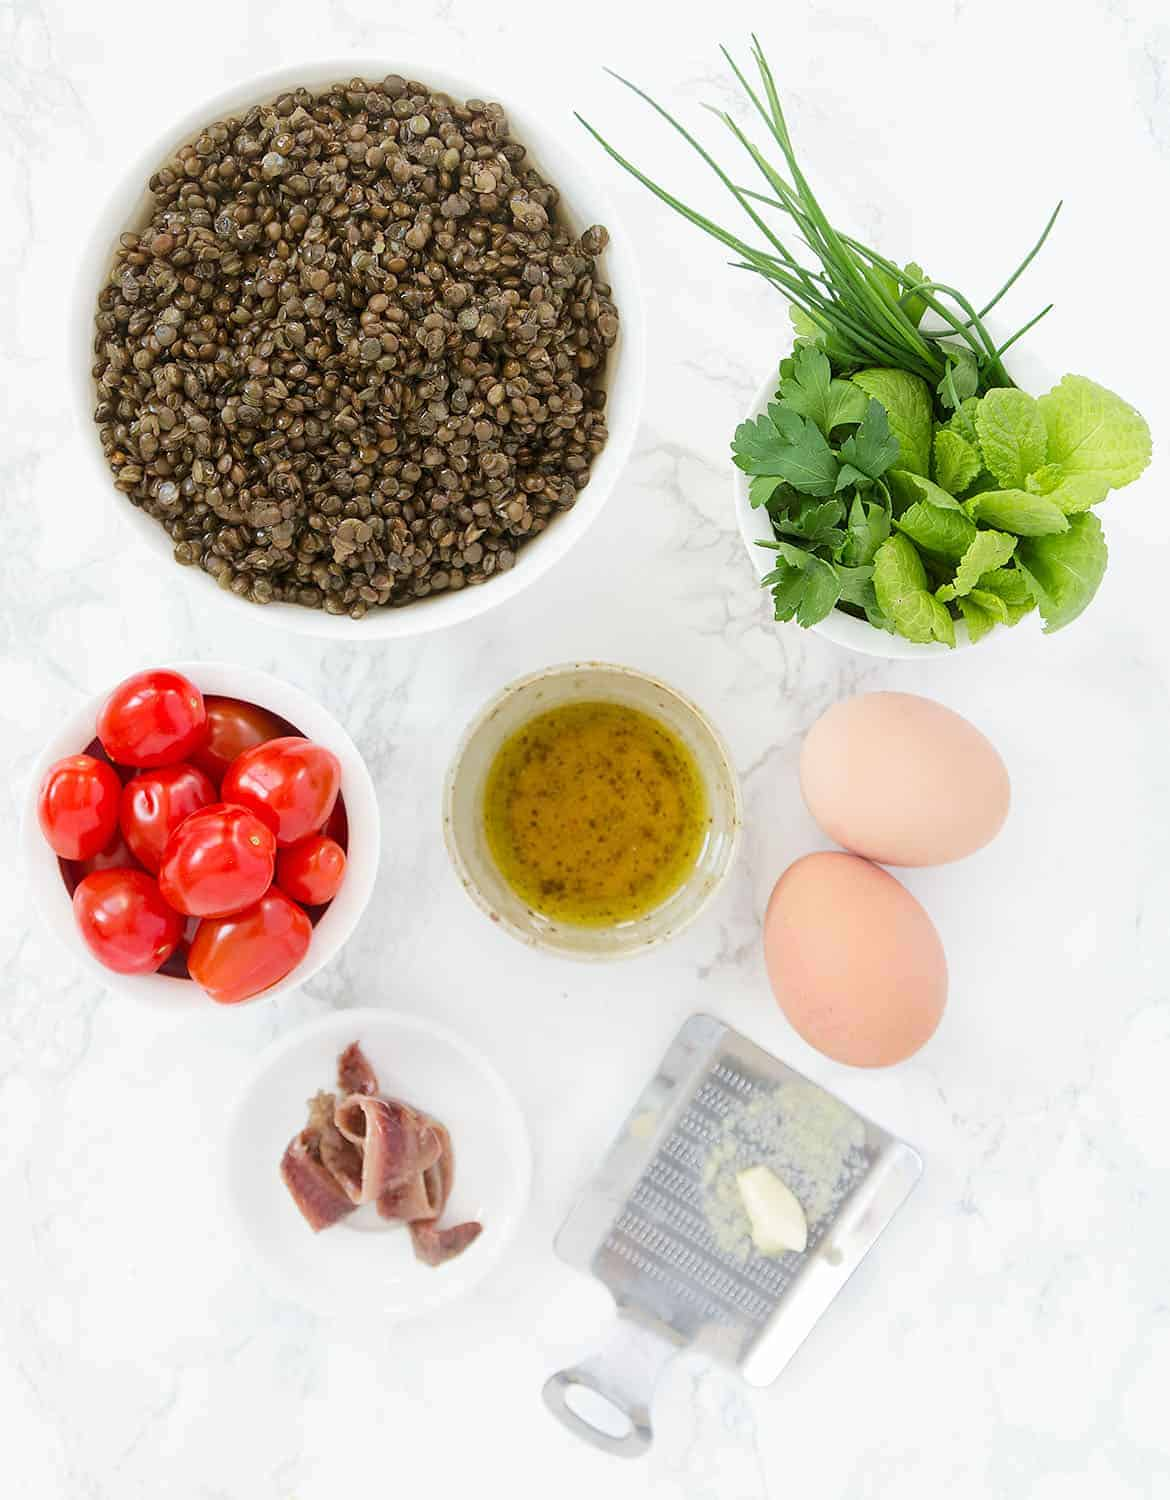 The ingredients for this puy lentil salad are arranged over a white background.